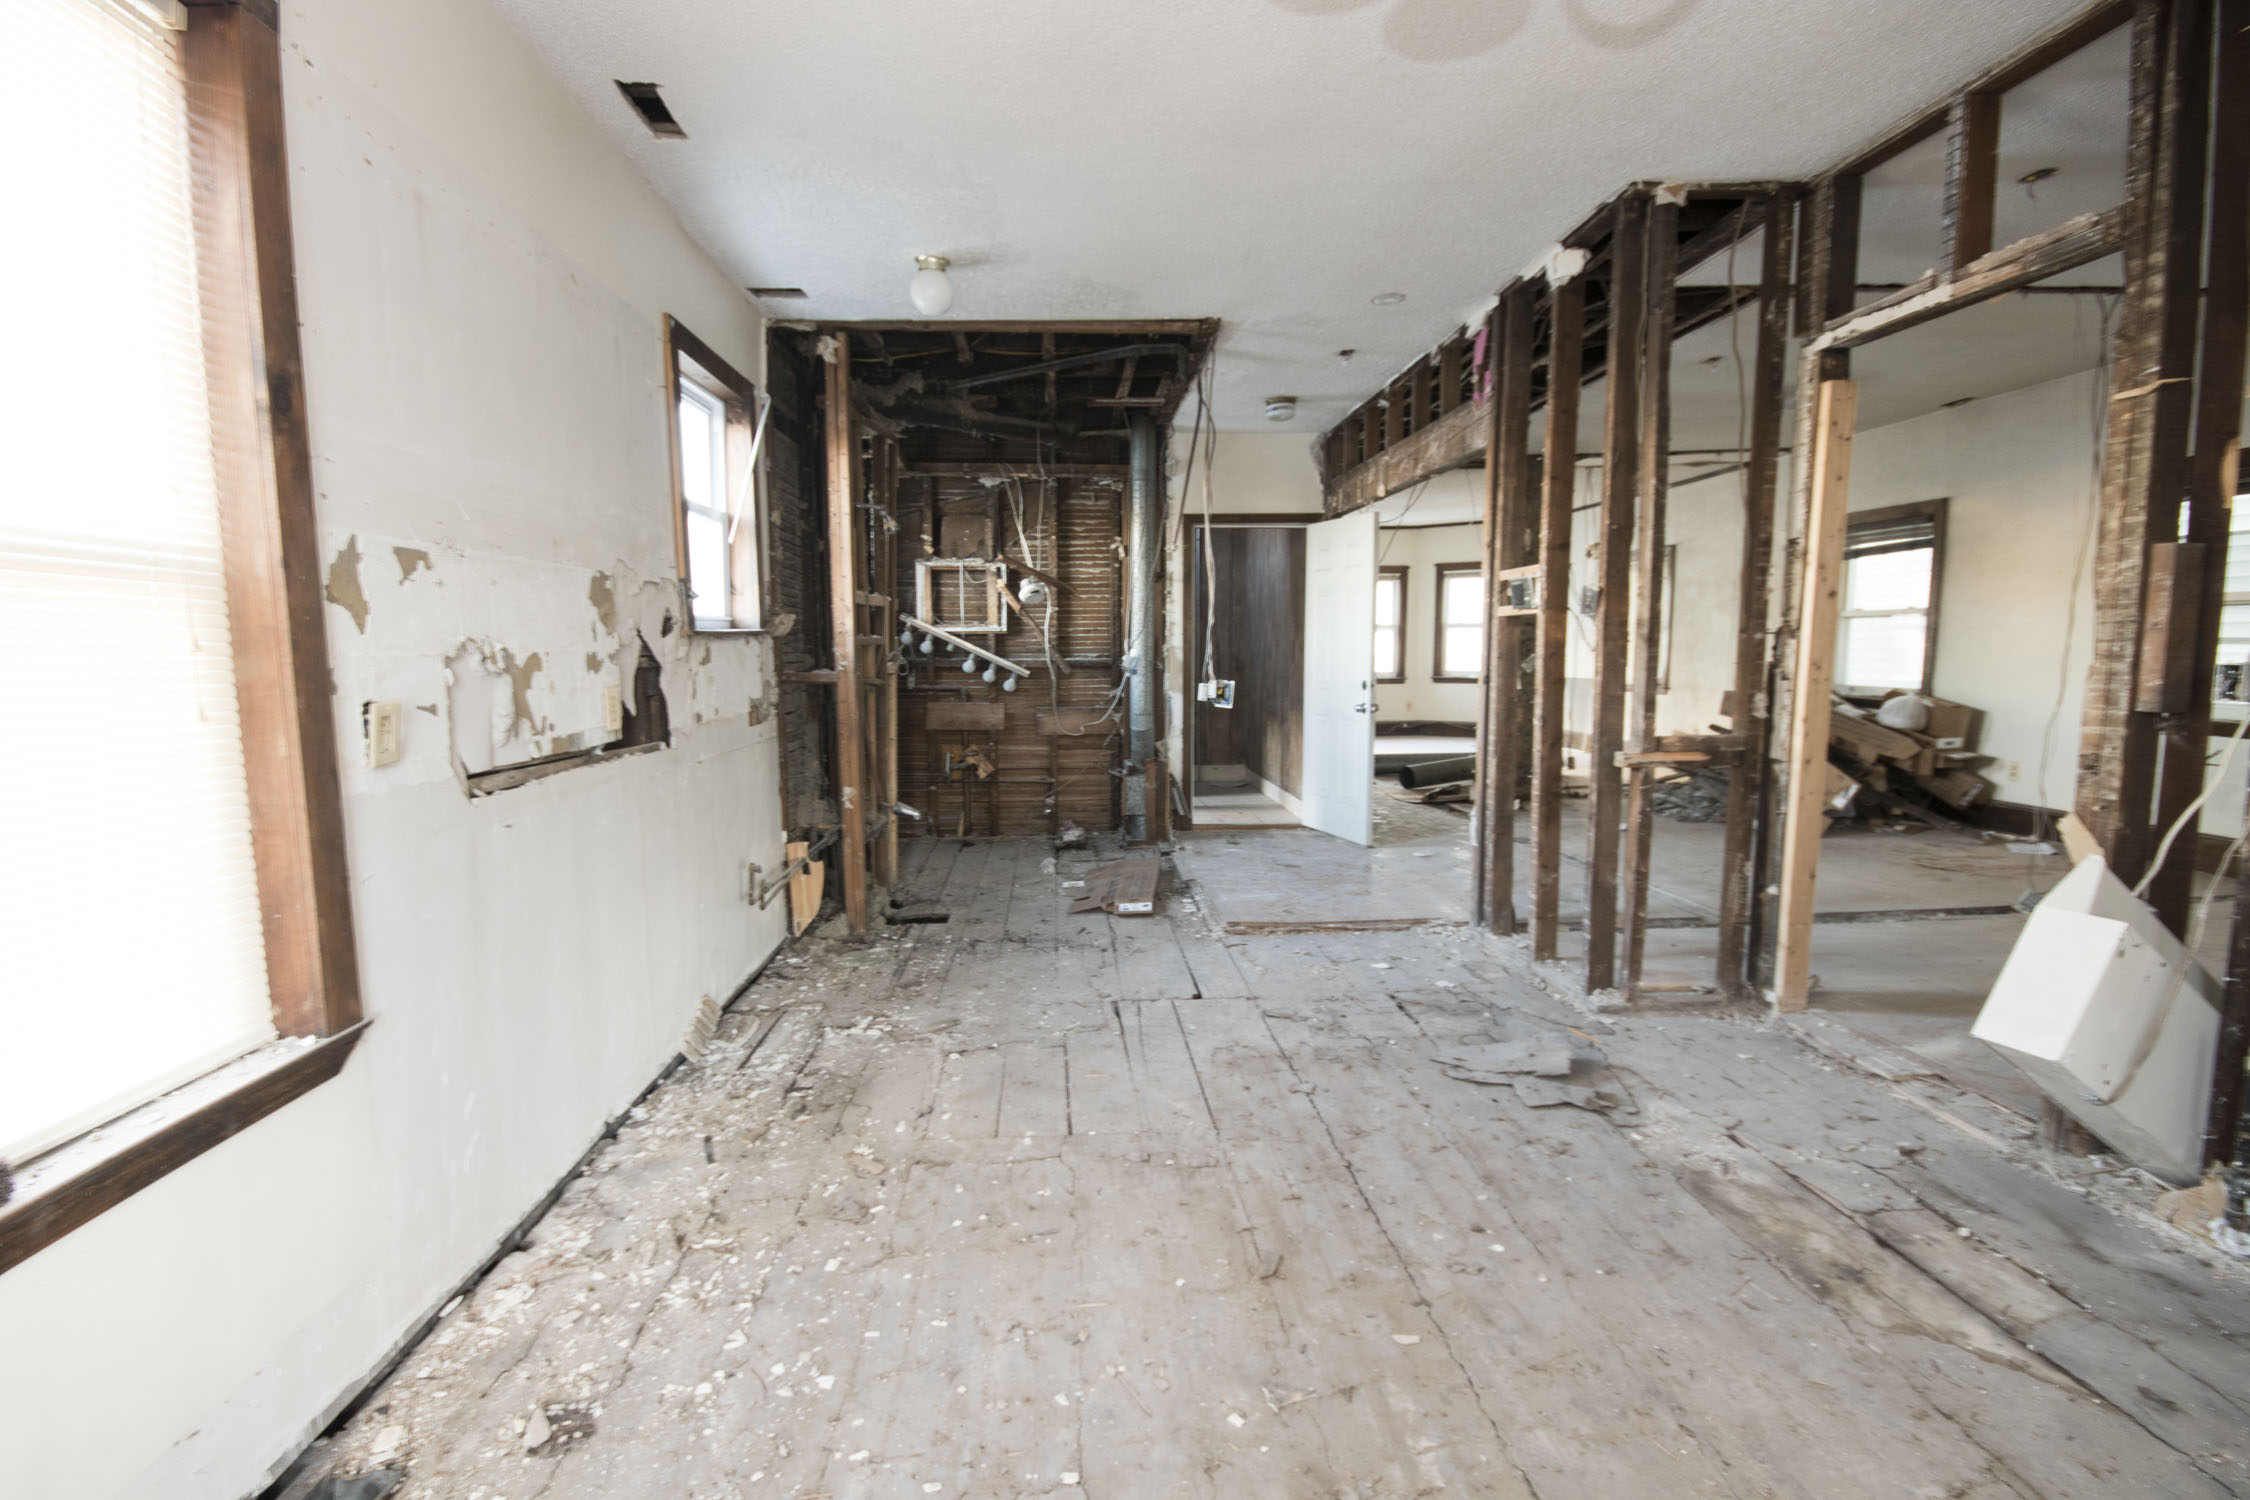 27 Darling Street Mission Hill Boston General Contractor_47